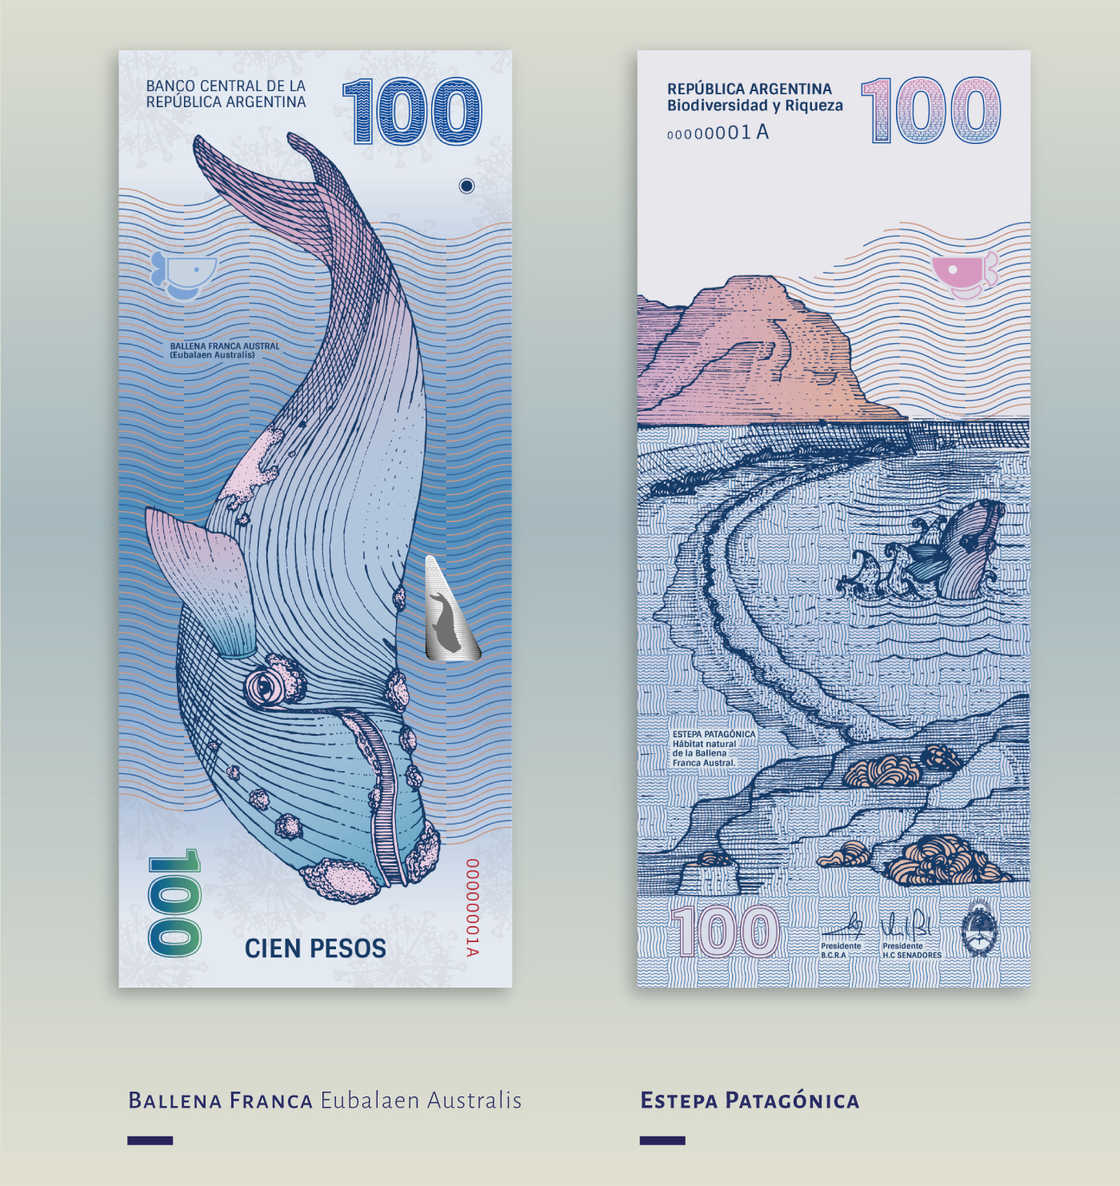 When two designers imagine the future Argentinean bank notes